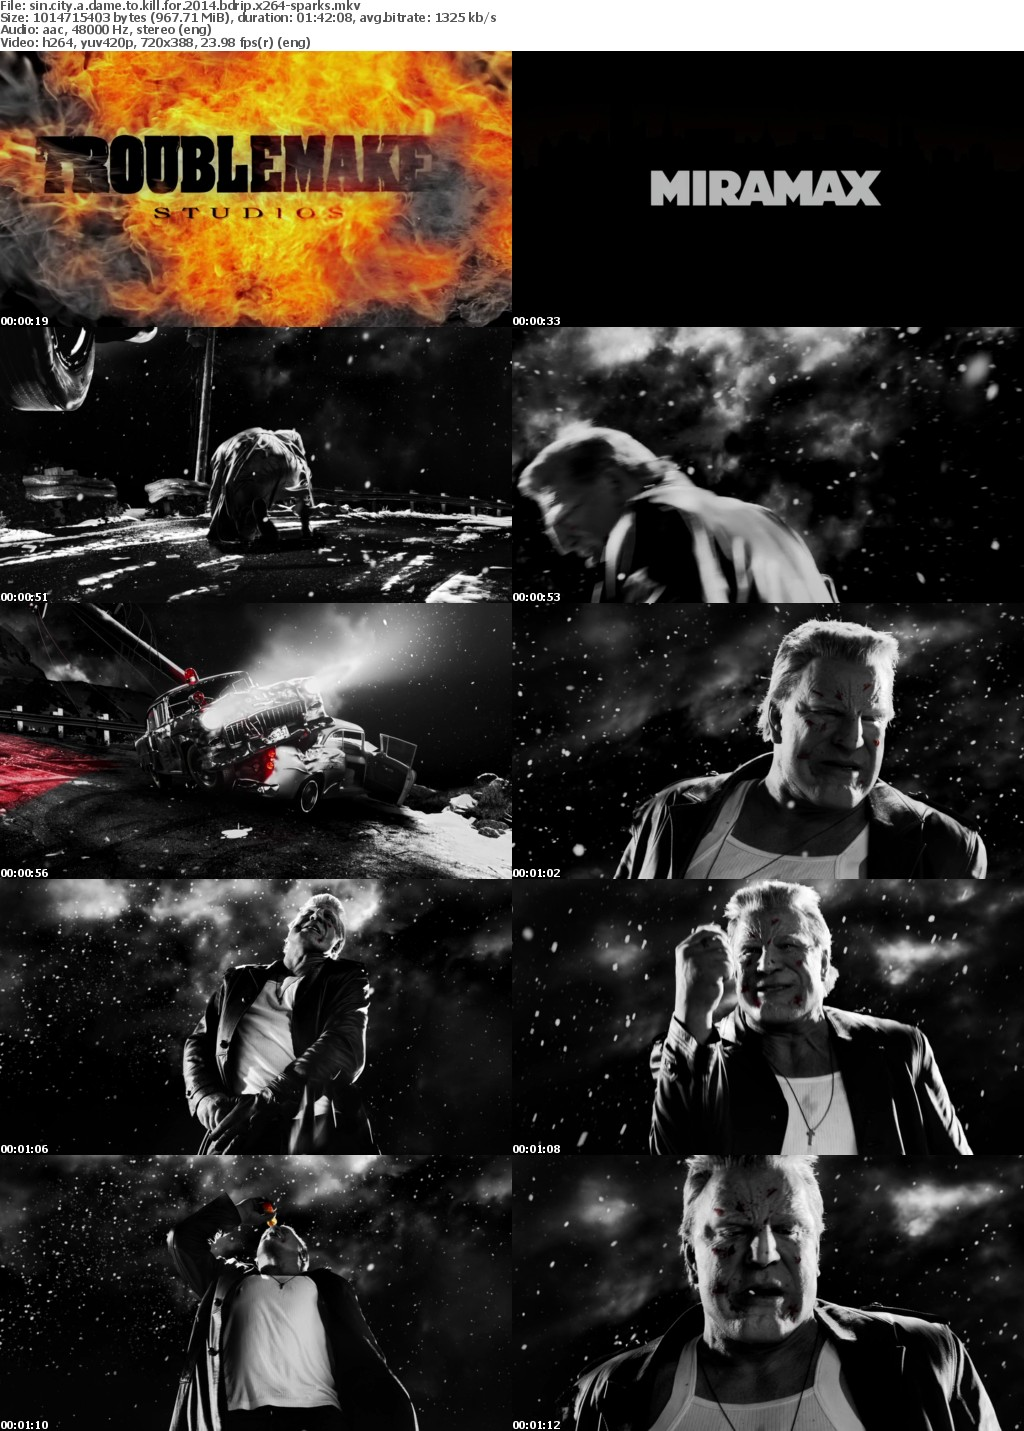 Sin City A Dame to Kill For 2014 BDRip x264-SPARKS